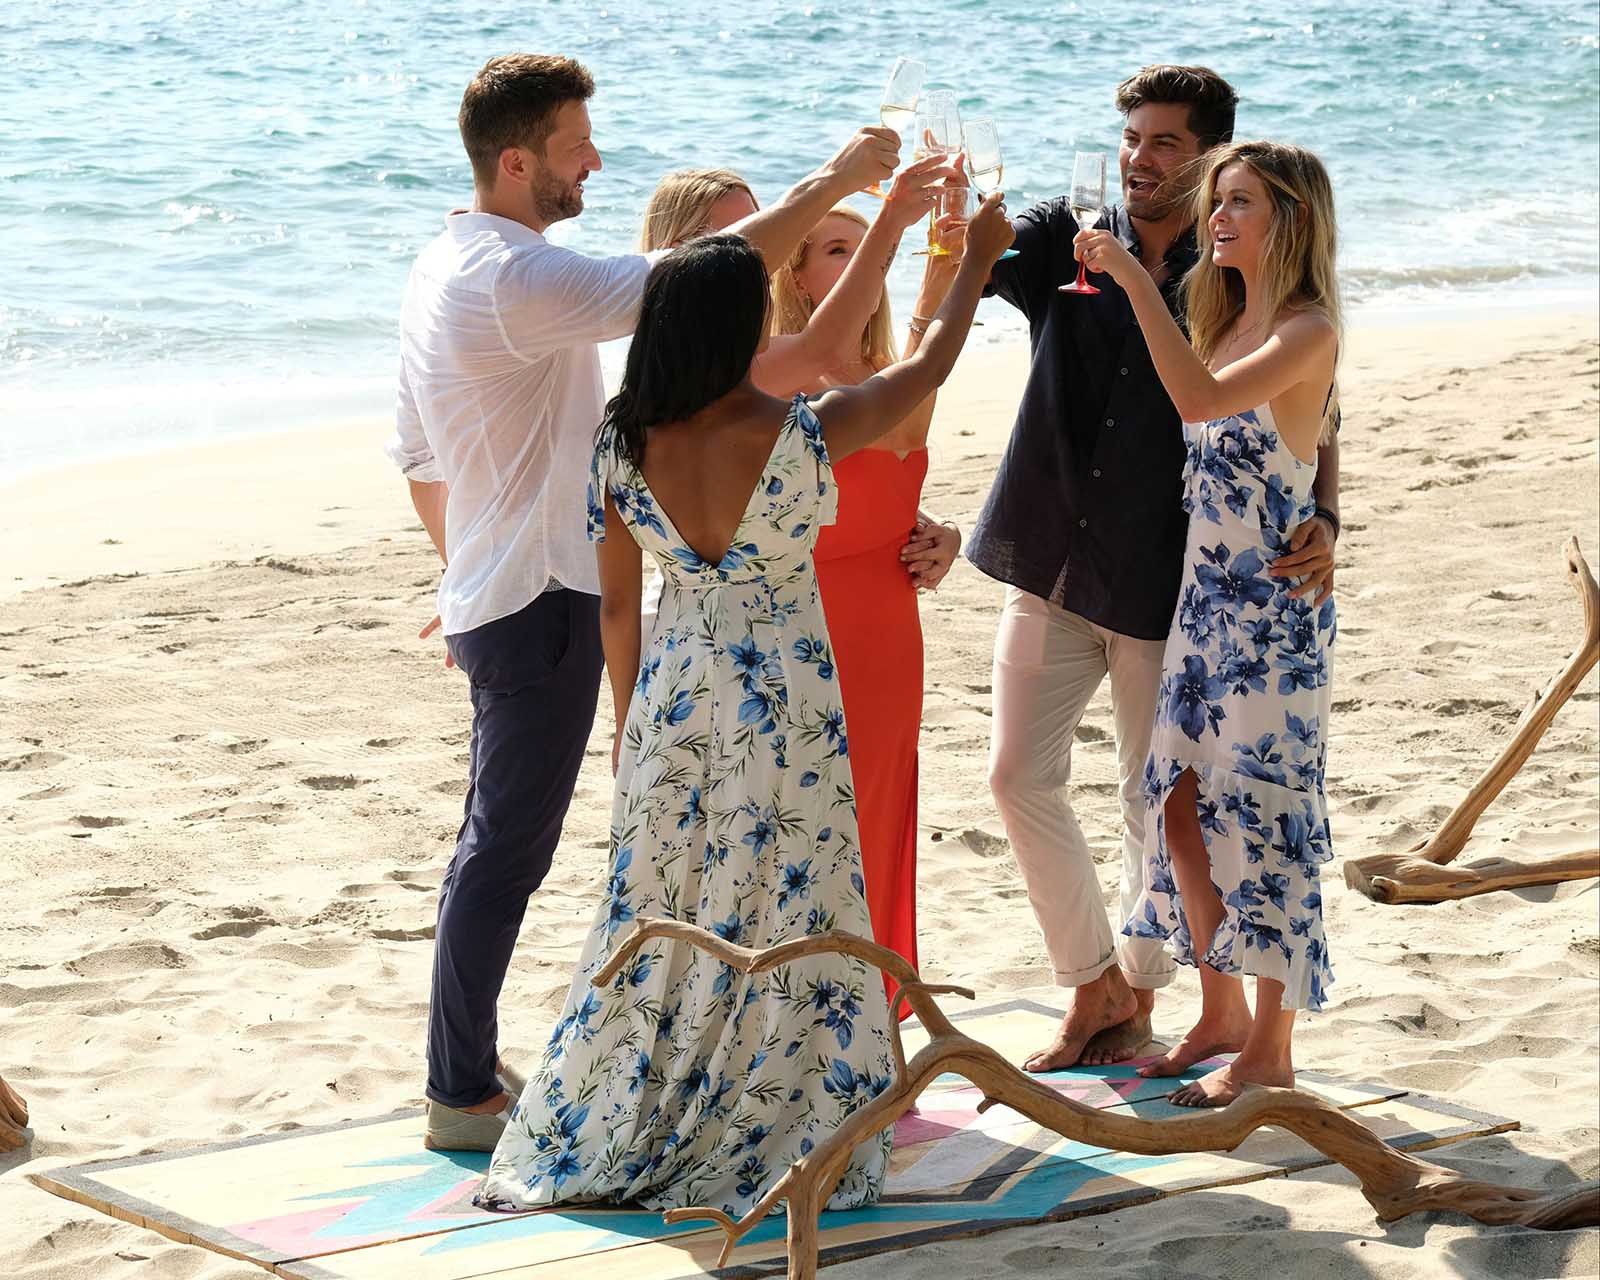 Since 'The Bachelor' hit our screens, reality dating shows have become America's favorite thing. Here are seven you need to binge if you haven't already.